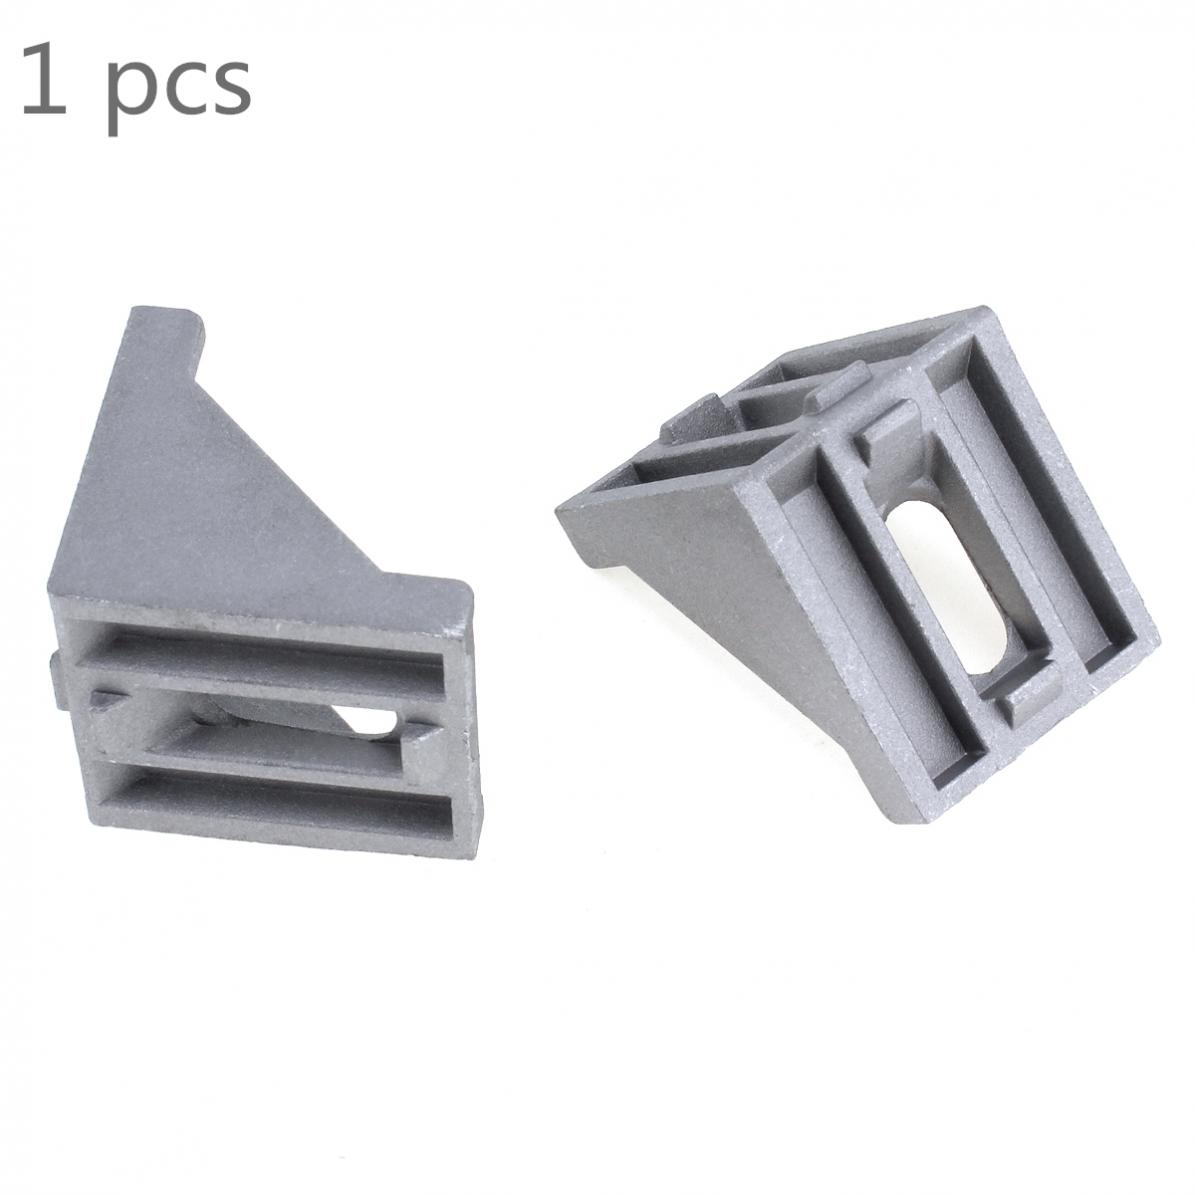 4040 Aluminum Corner Angle Code With Nut Hole Support T-slot Profile Frame Extrusion Bracket For Connecting The Flow Profile